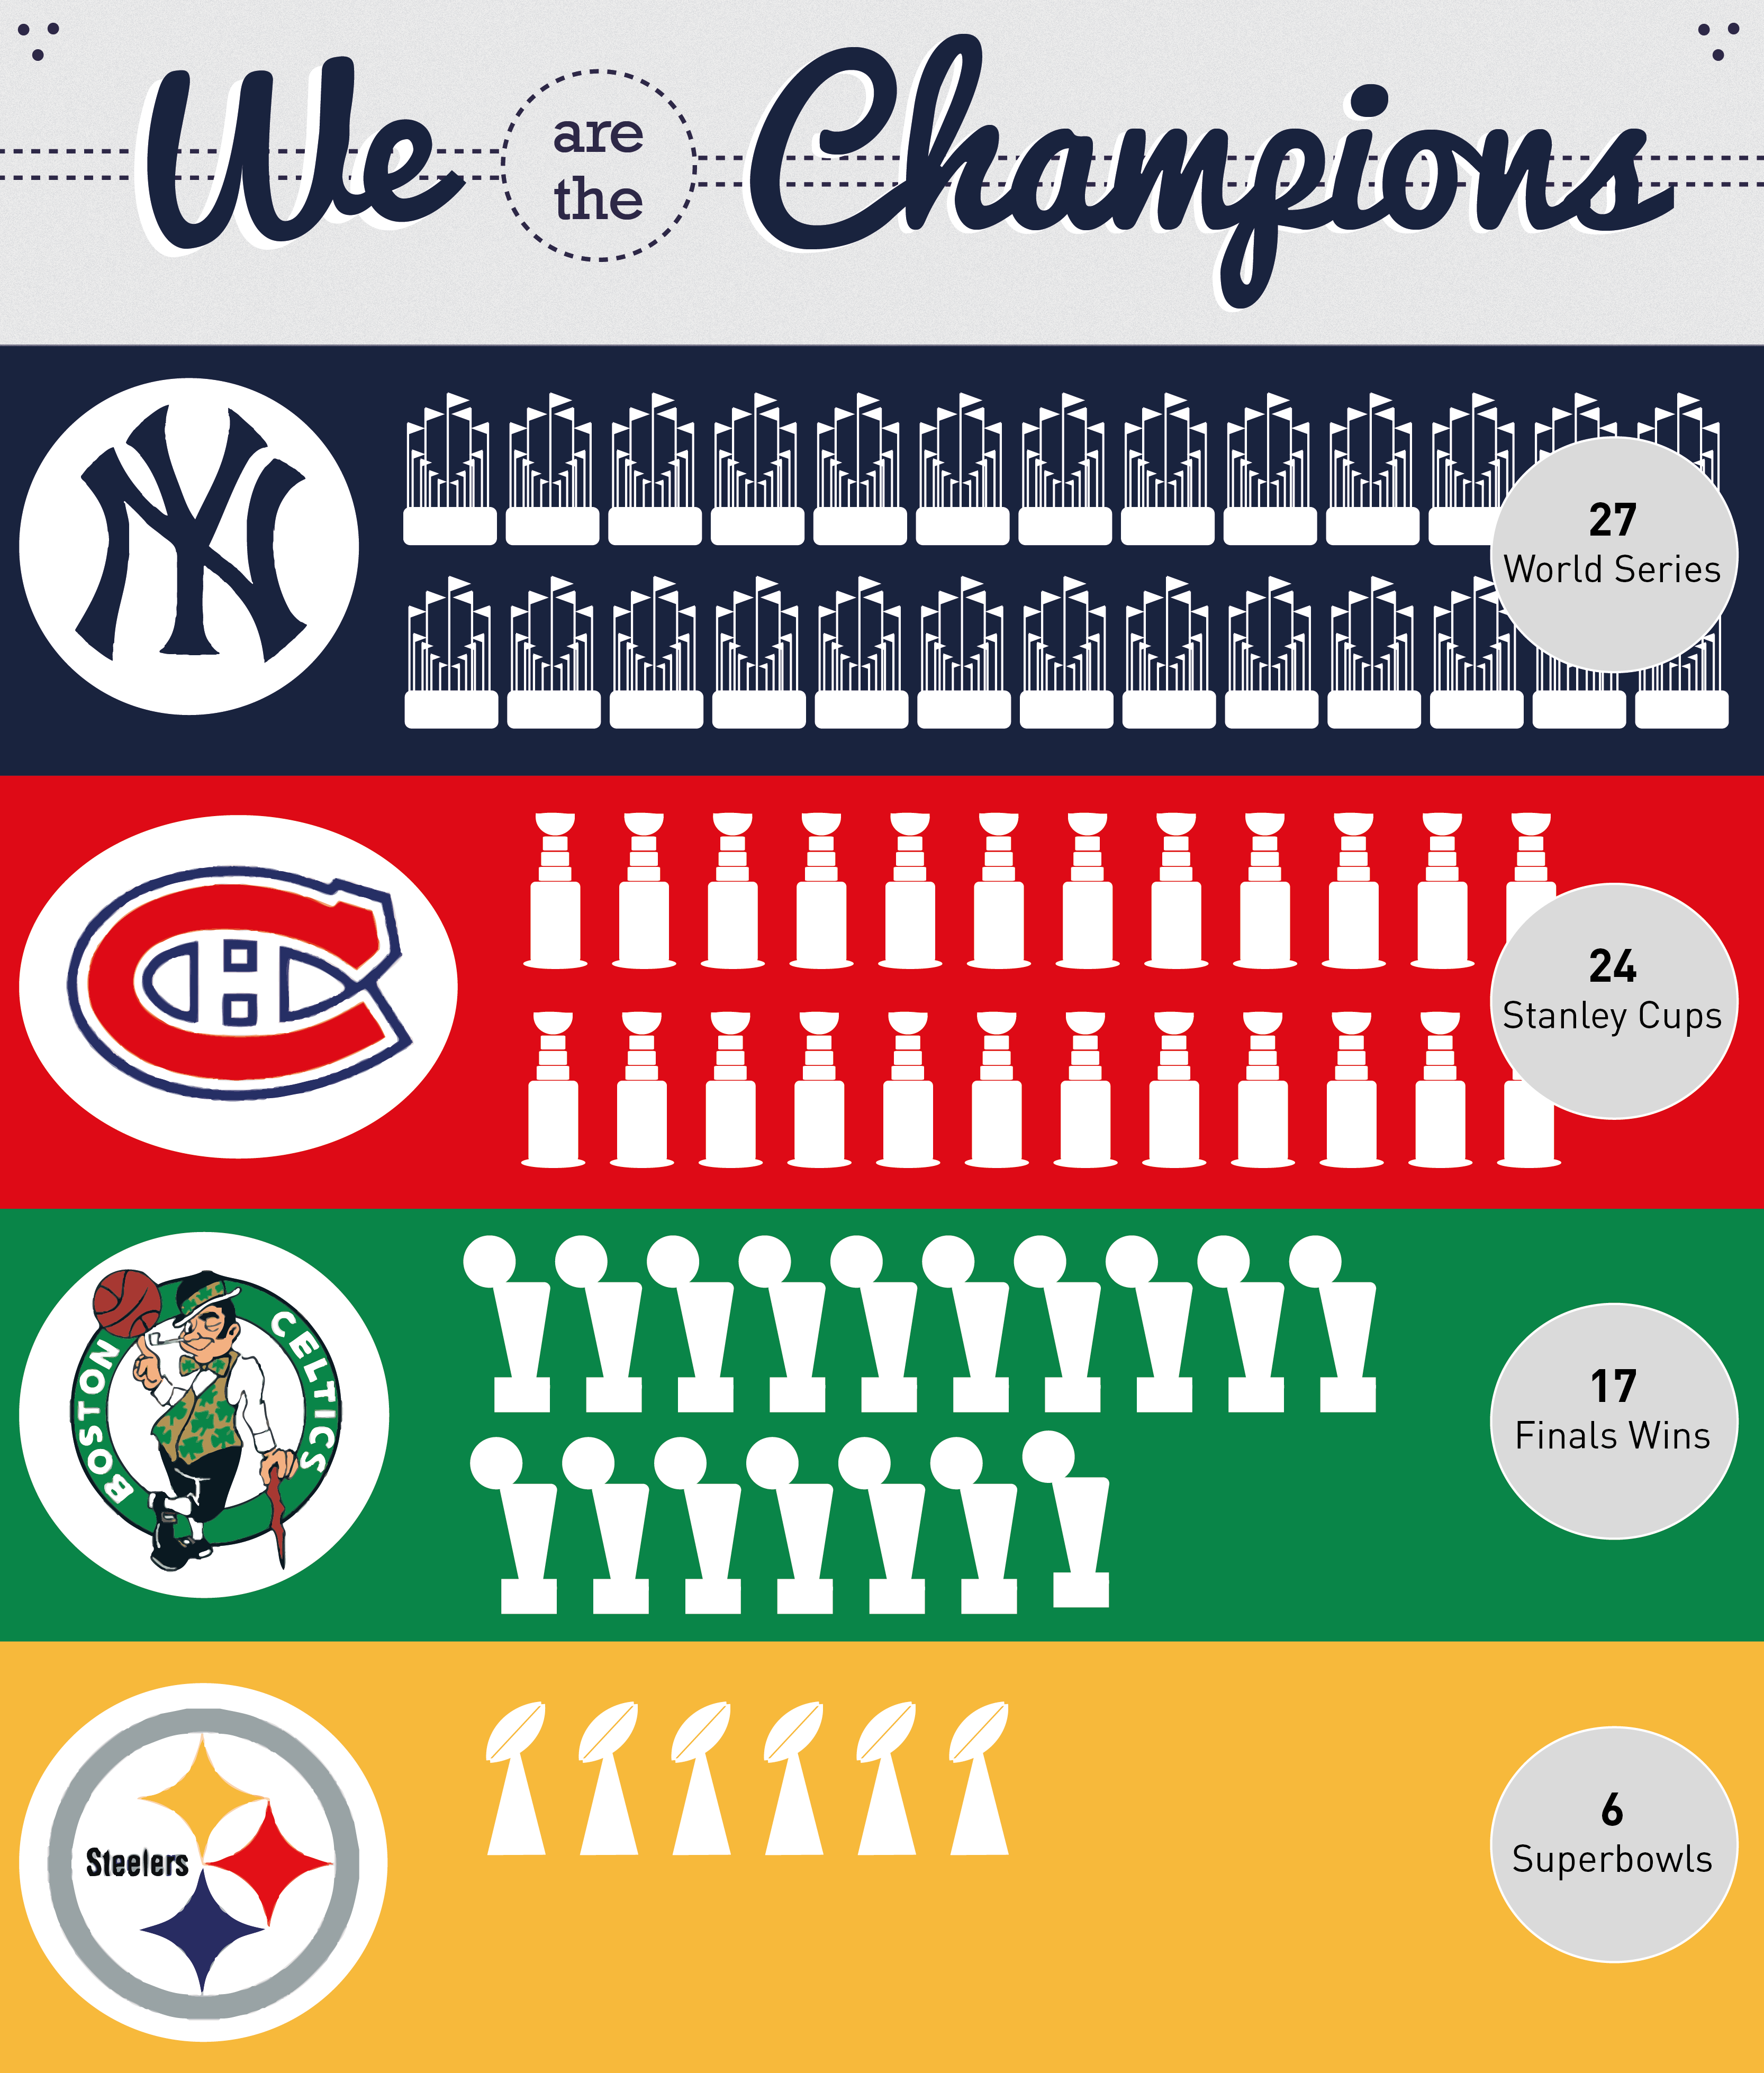 Yankees Canadiens Celtics And Steelers Have The Most Championships In Their Respected Sport We Are The Champions Canadiens Steelers